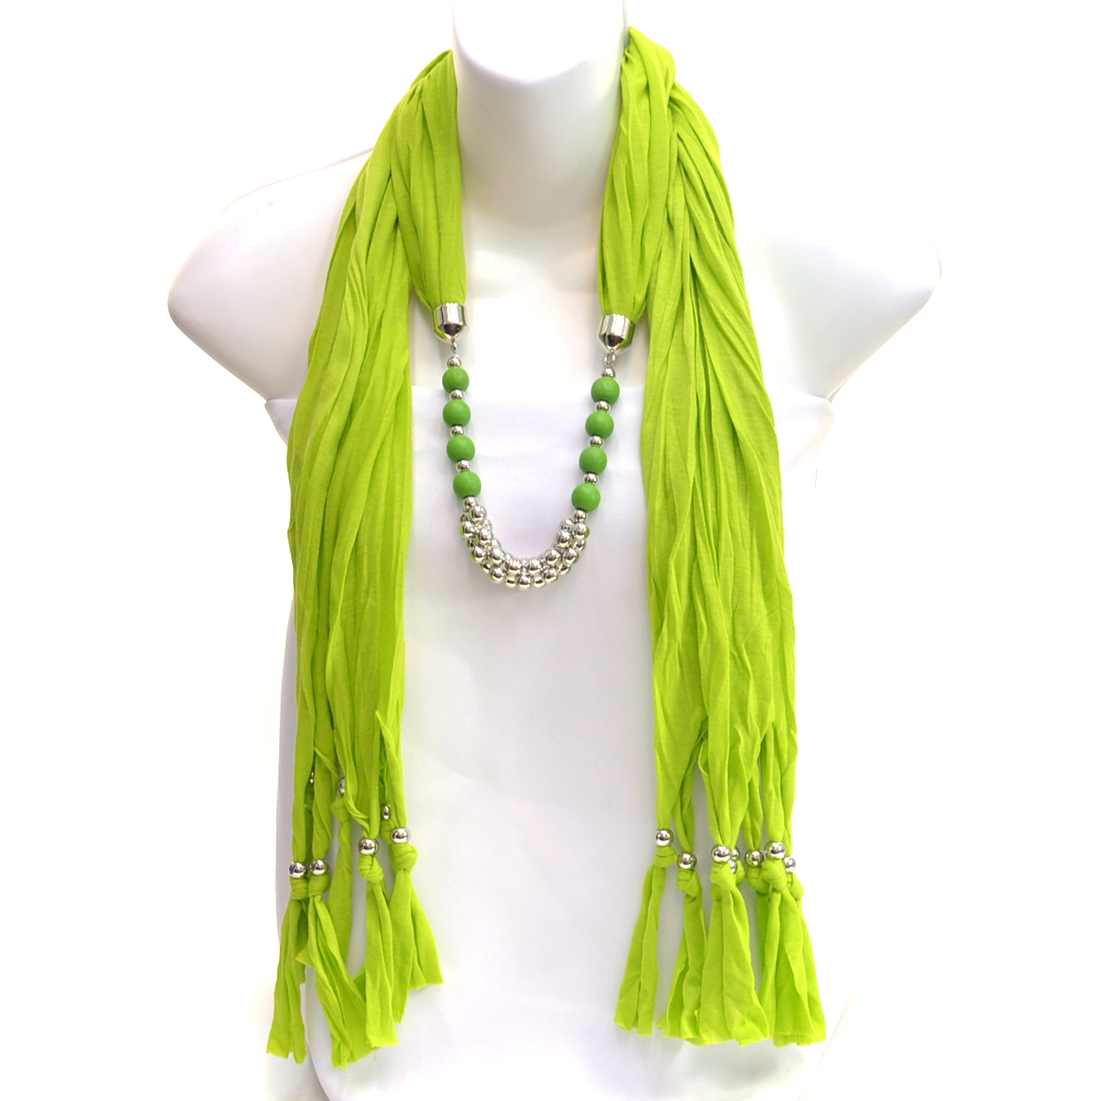 Interlocking Silver Tone Piece Scarf with Wooden Look Beads and Silver Tone Beaded Fringe